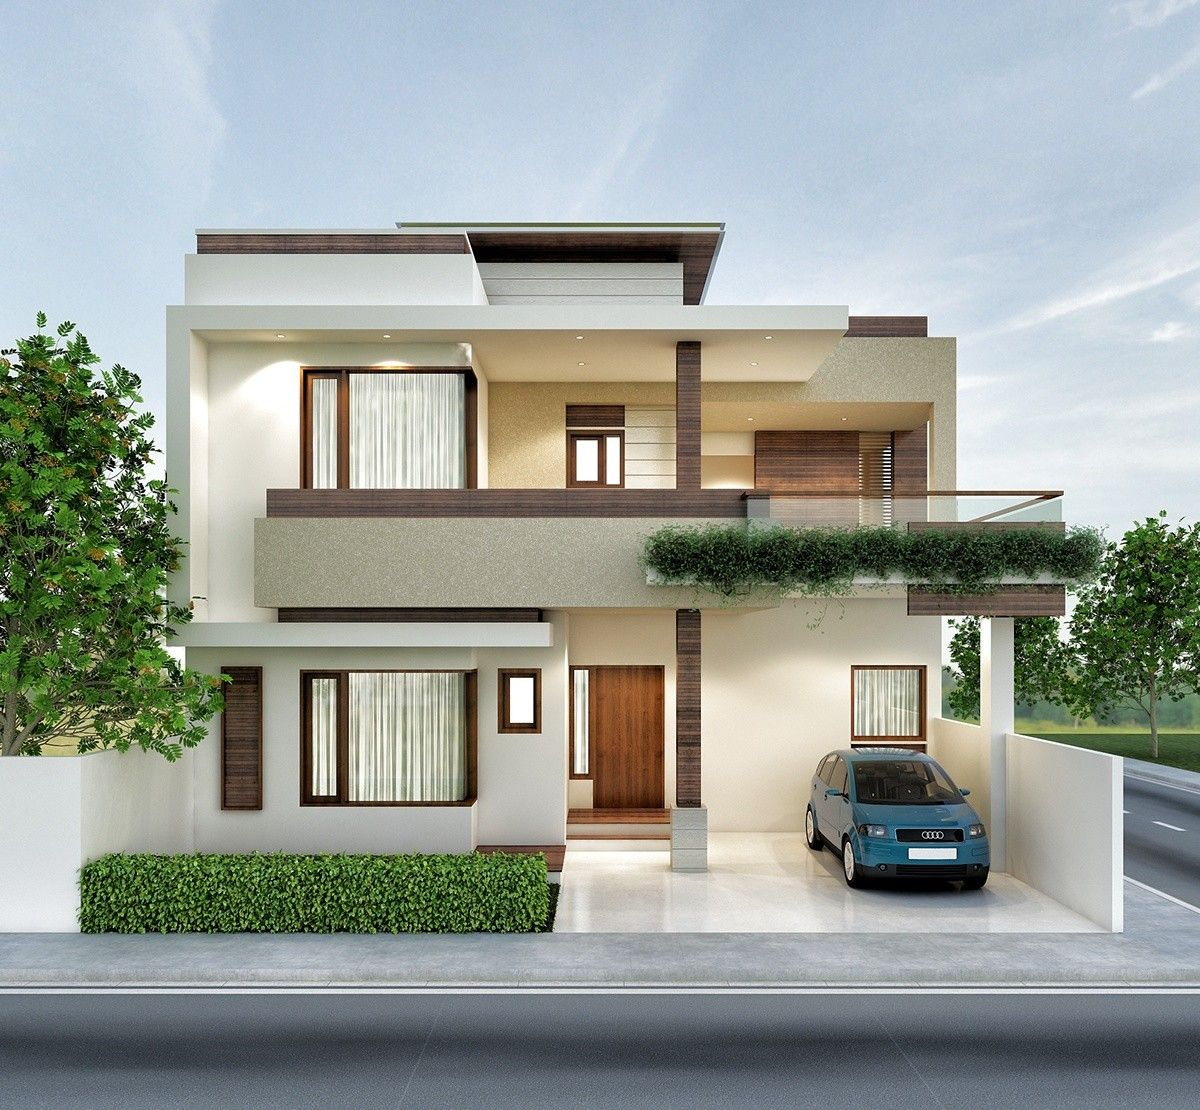 Pin by asad rasheed on ggg pinterest house architecture and modern